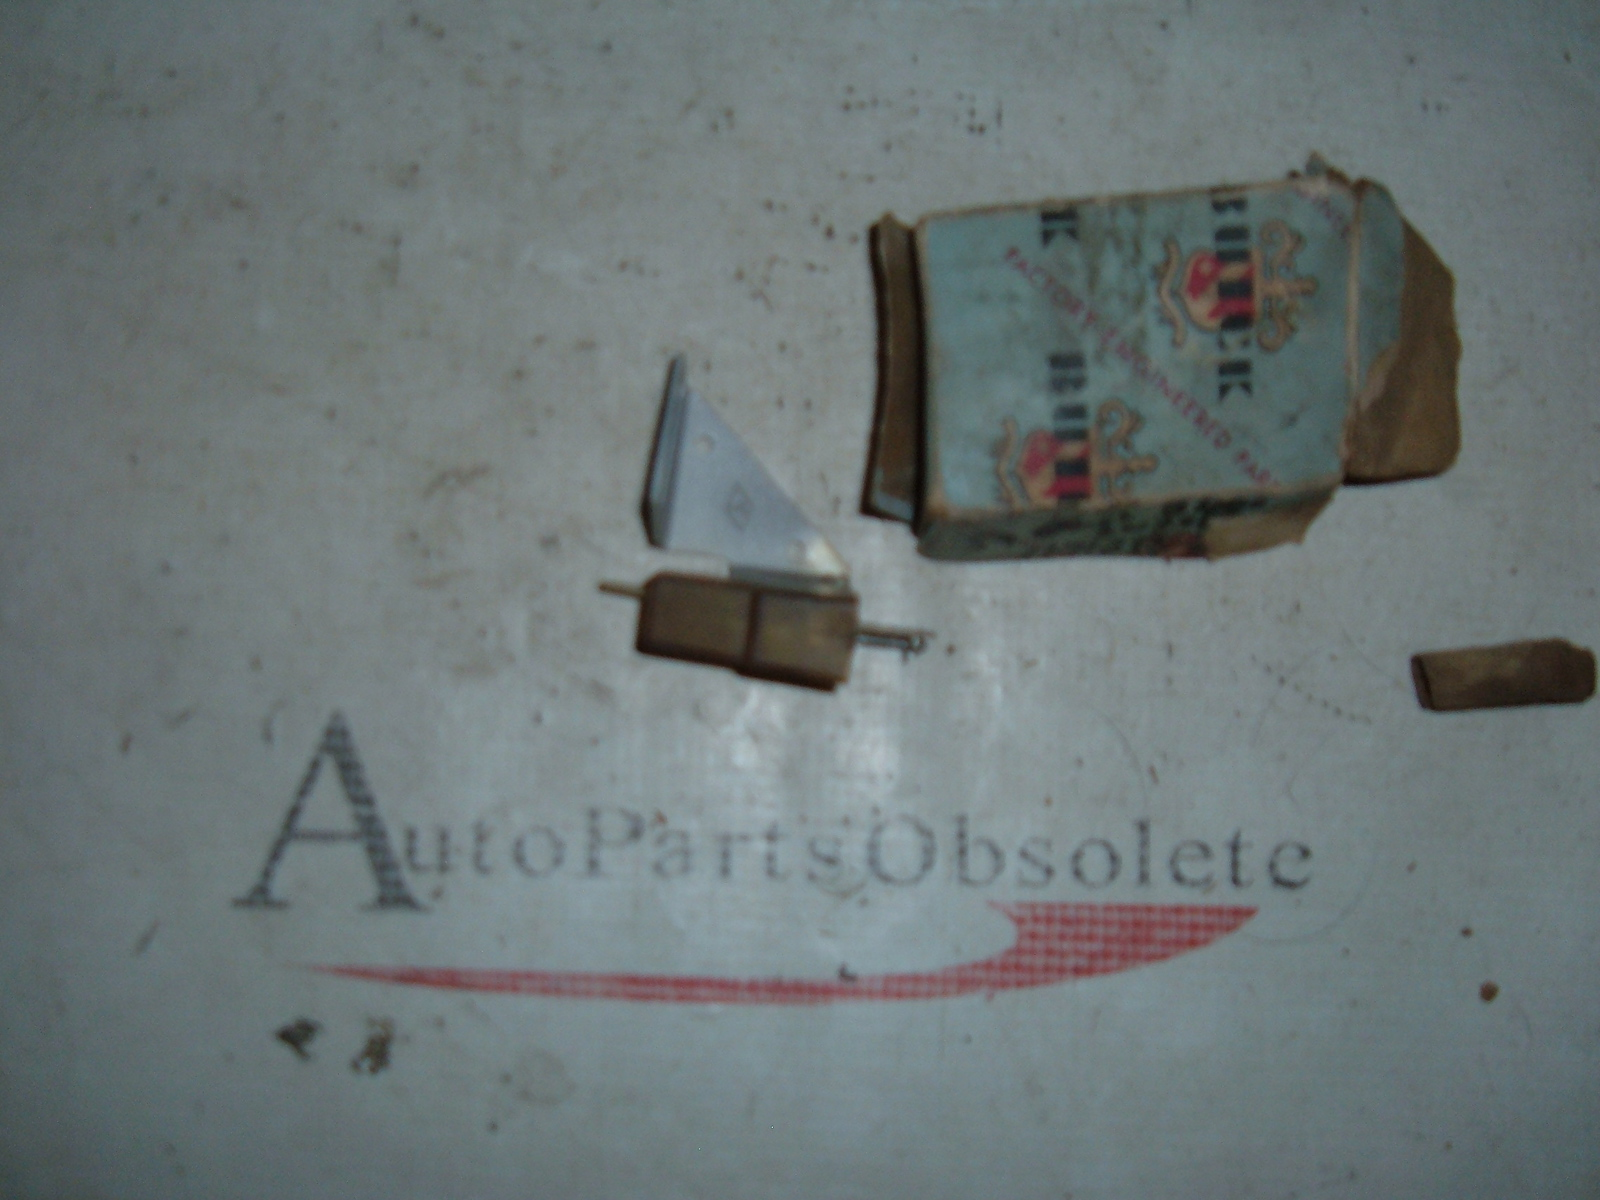 1959 buick air conditioning blower switch nos gm # 1191213 (z 1191213)